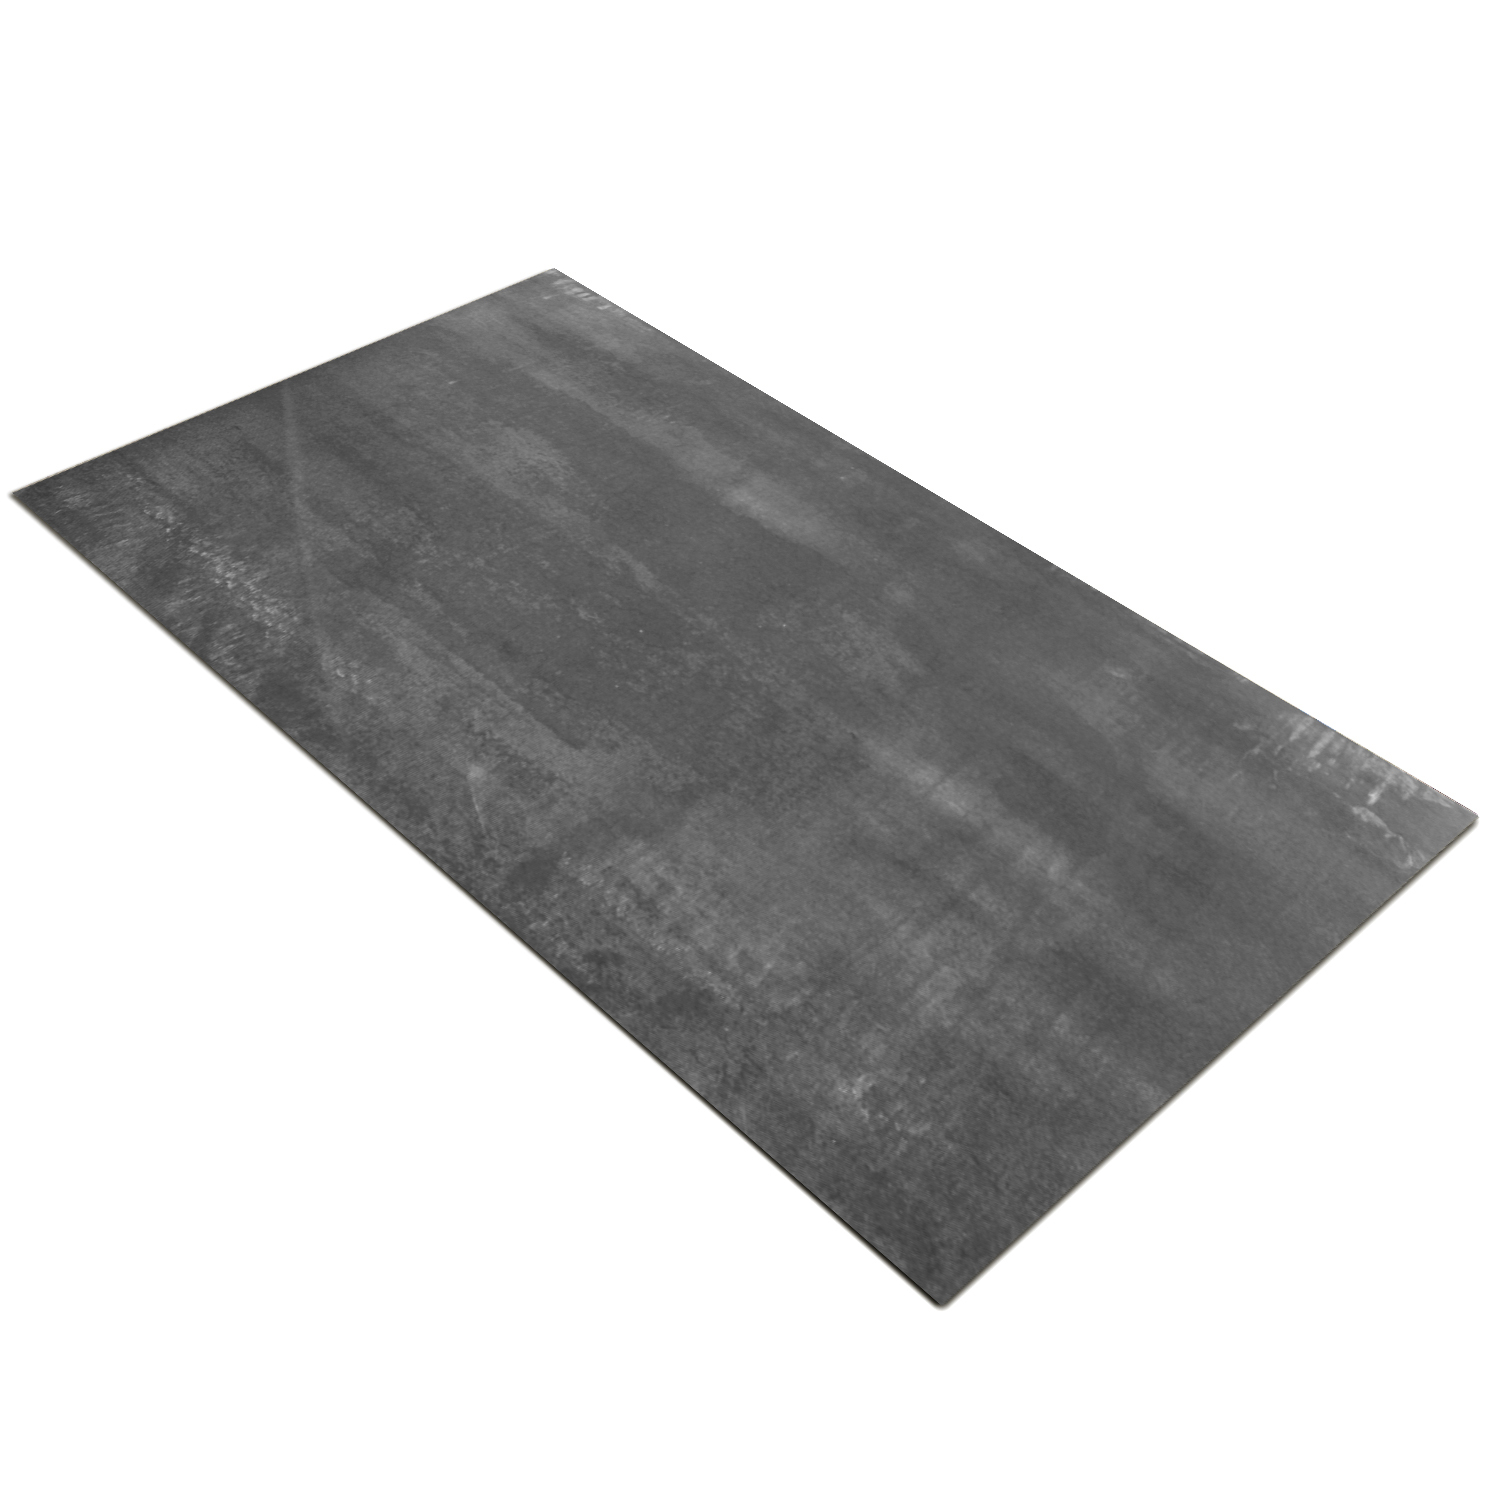 carrelage mural sophia anthracite 30x60cm ebay. Black Bedroom Furniture Sets. Home Design Ideas